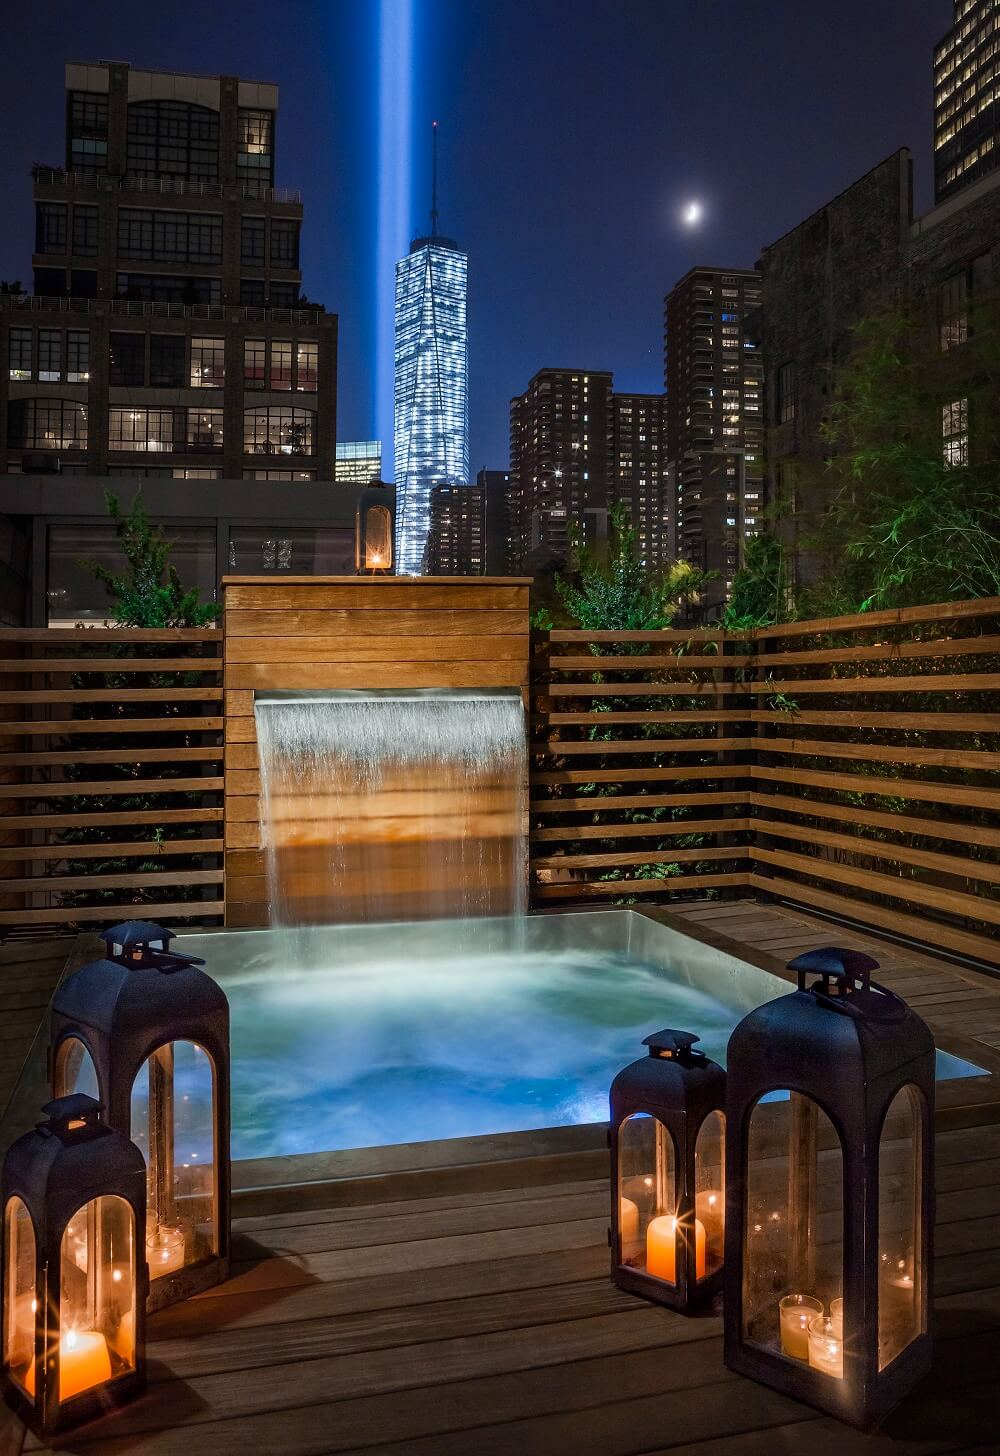 """Custom Stainless Steel Spa 81"""" x 87"""" x 42"""" with bench seating.  Custom stainless steel water feature 40""""x 67"""" with a 36"""" water spout."""